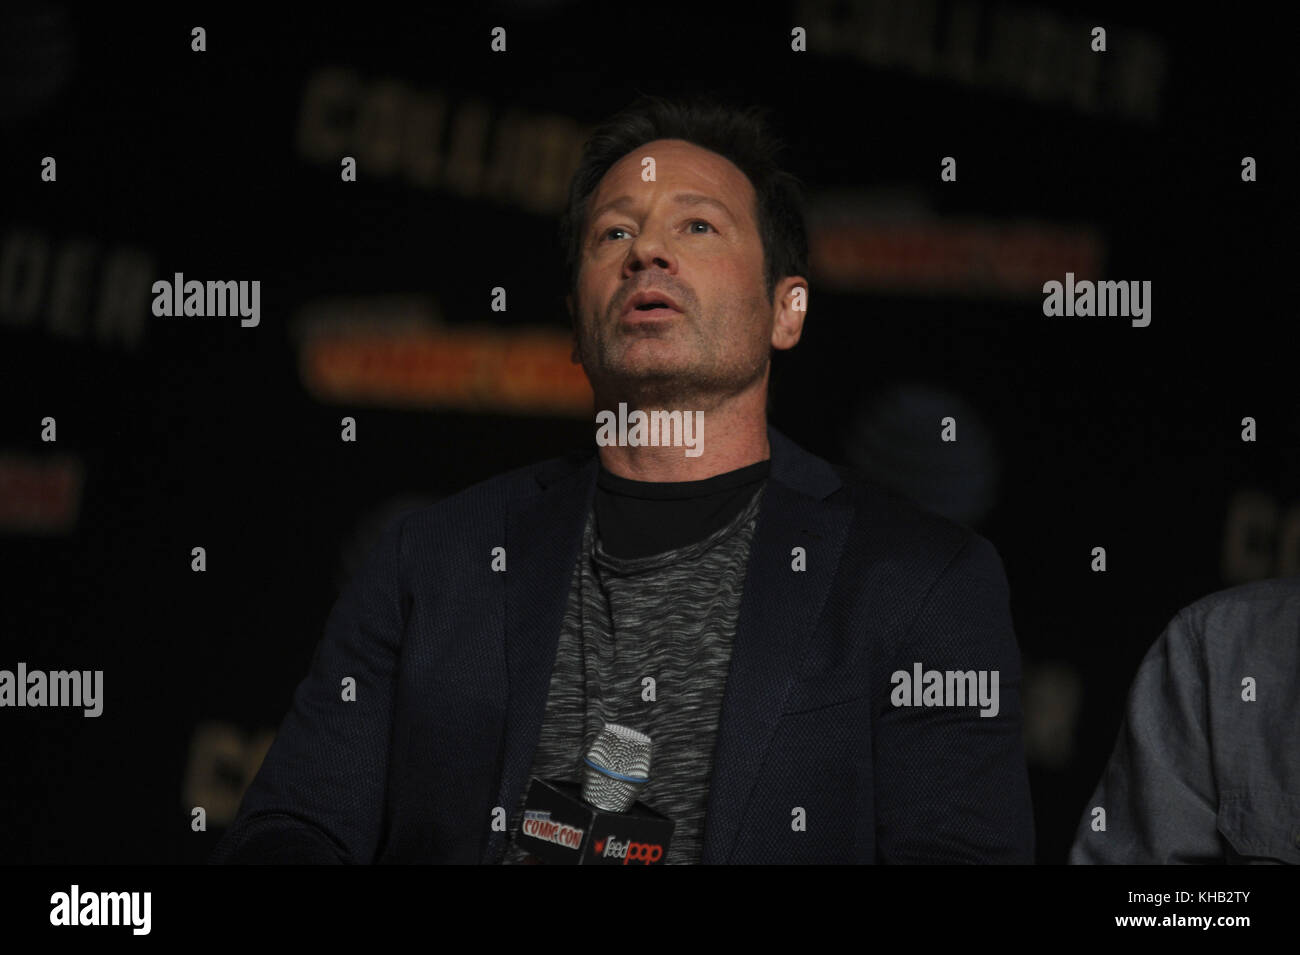 NEW YORK, NY - OCTOBER 08: David Duchovny  speaks onstage at The X-Files panel during 2017 New York Comic Con -Day - Stock Image